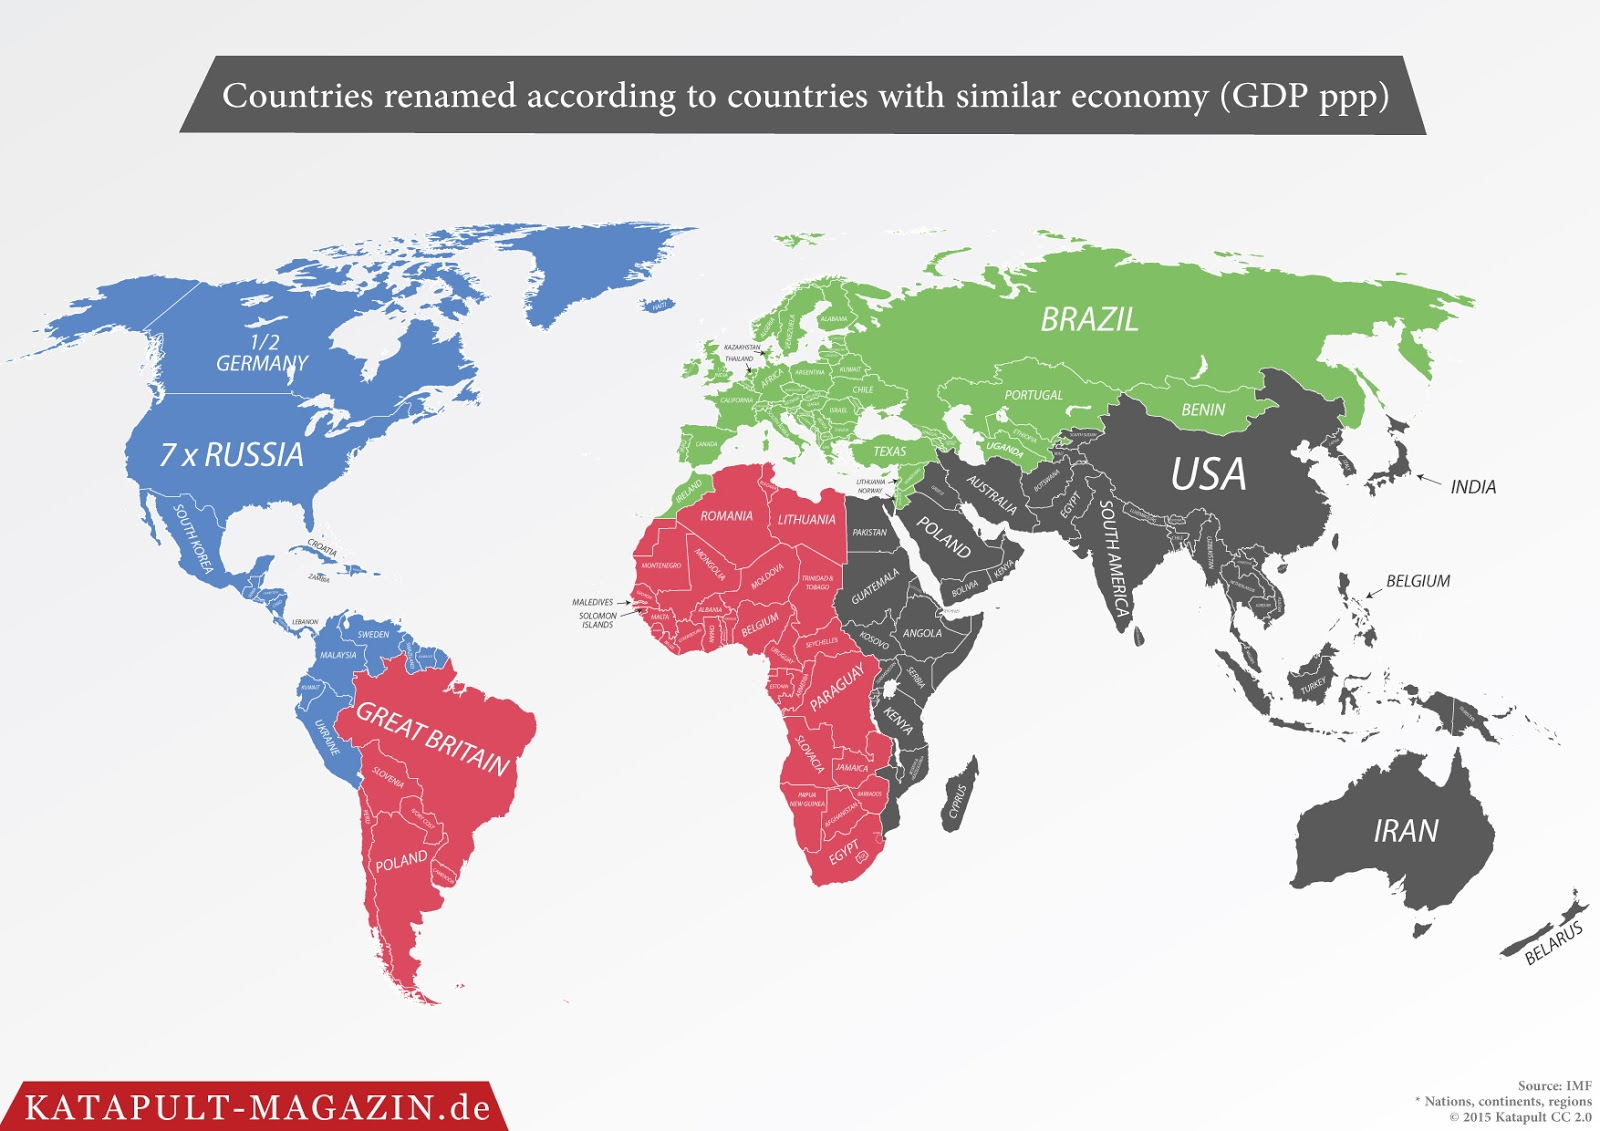 Countries renamed according to countries with similar economy (GDP)